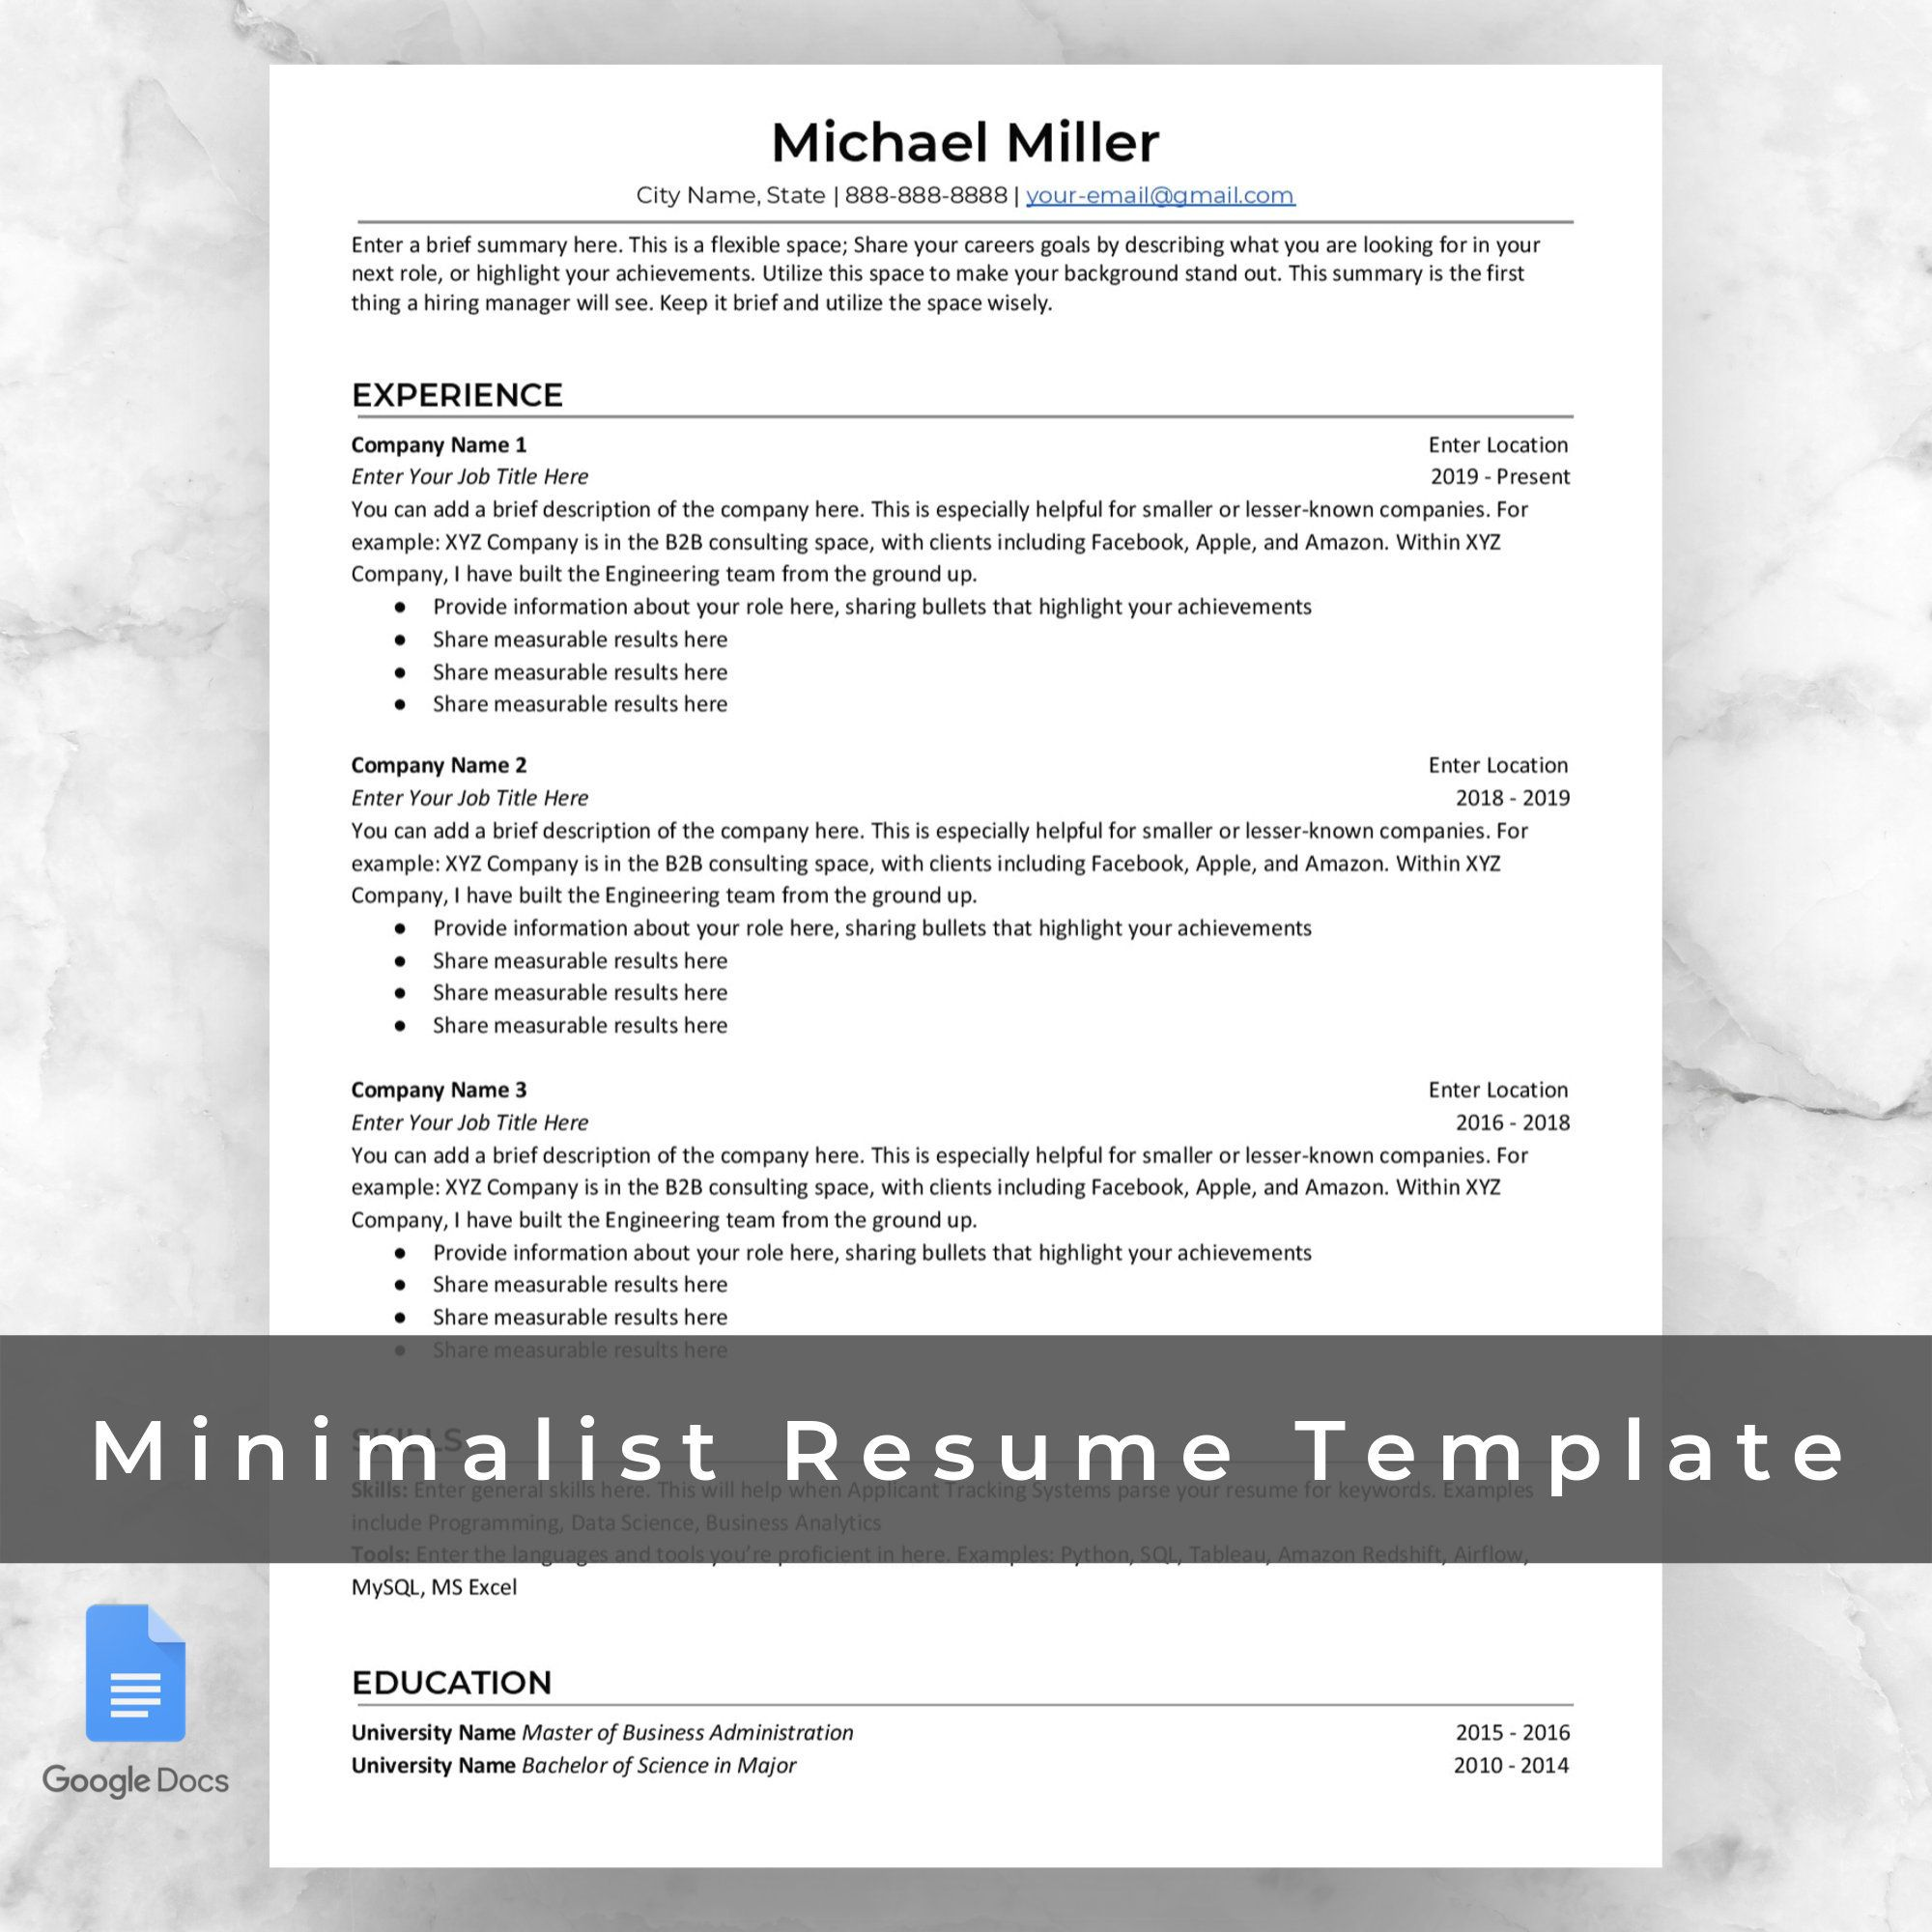 Professional Resume Template Google Docs / Functional